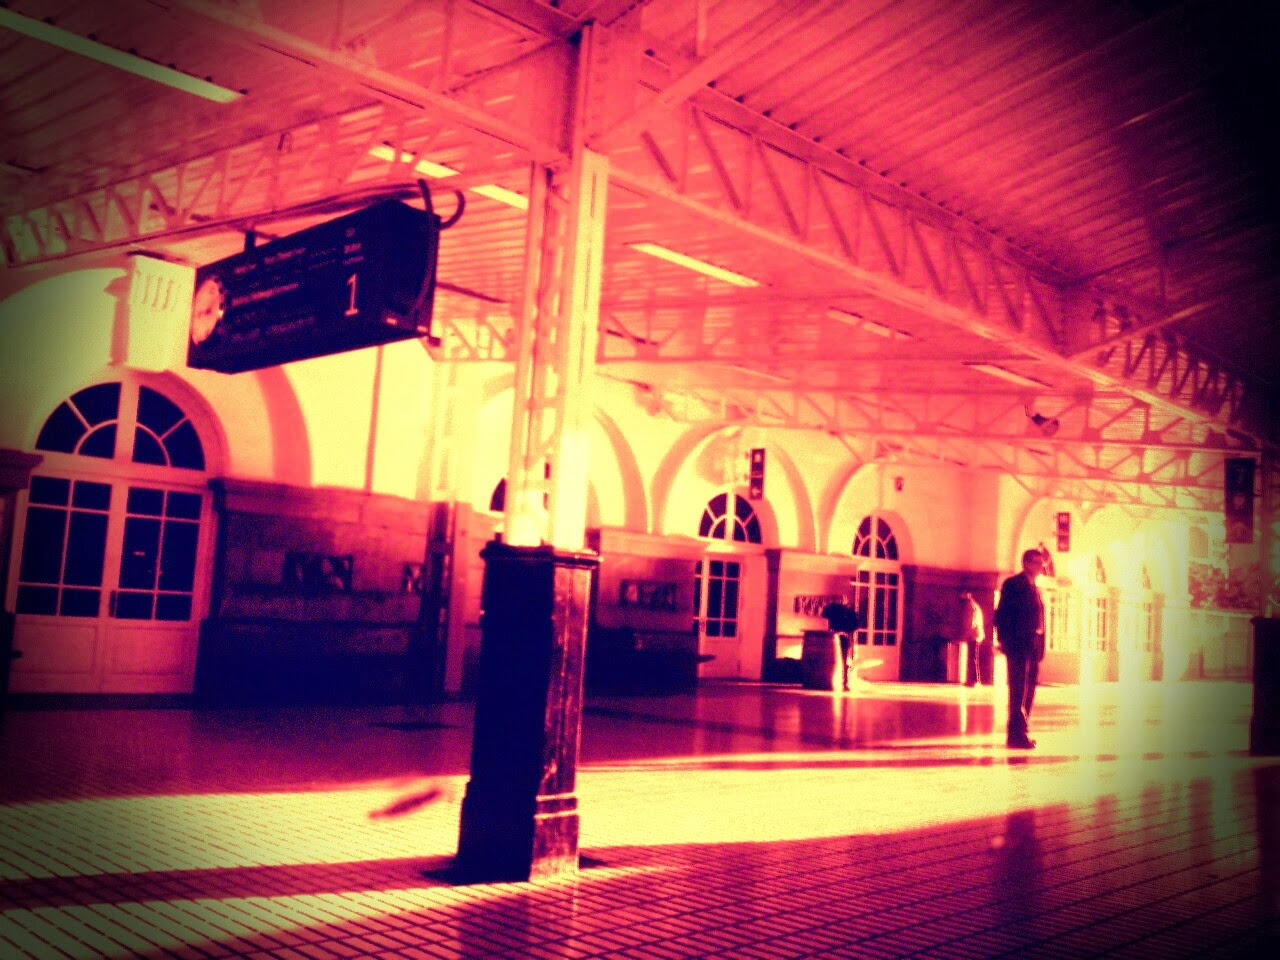 tren estacio  vitoria by c. araus